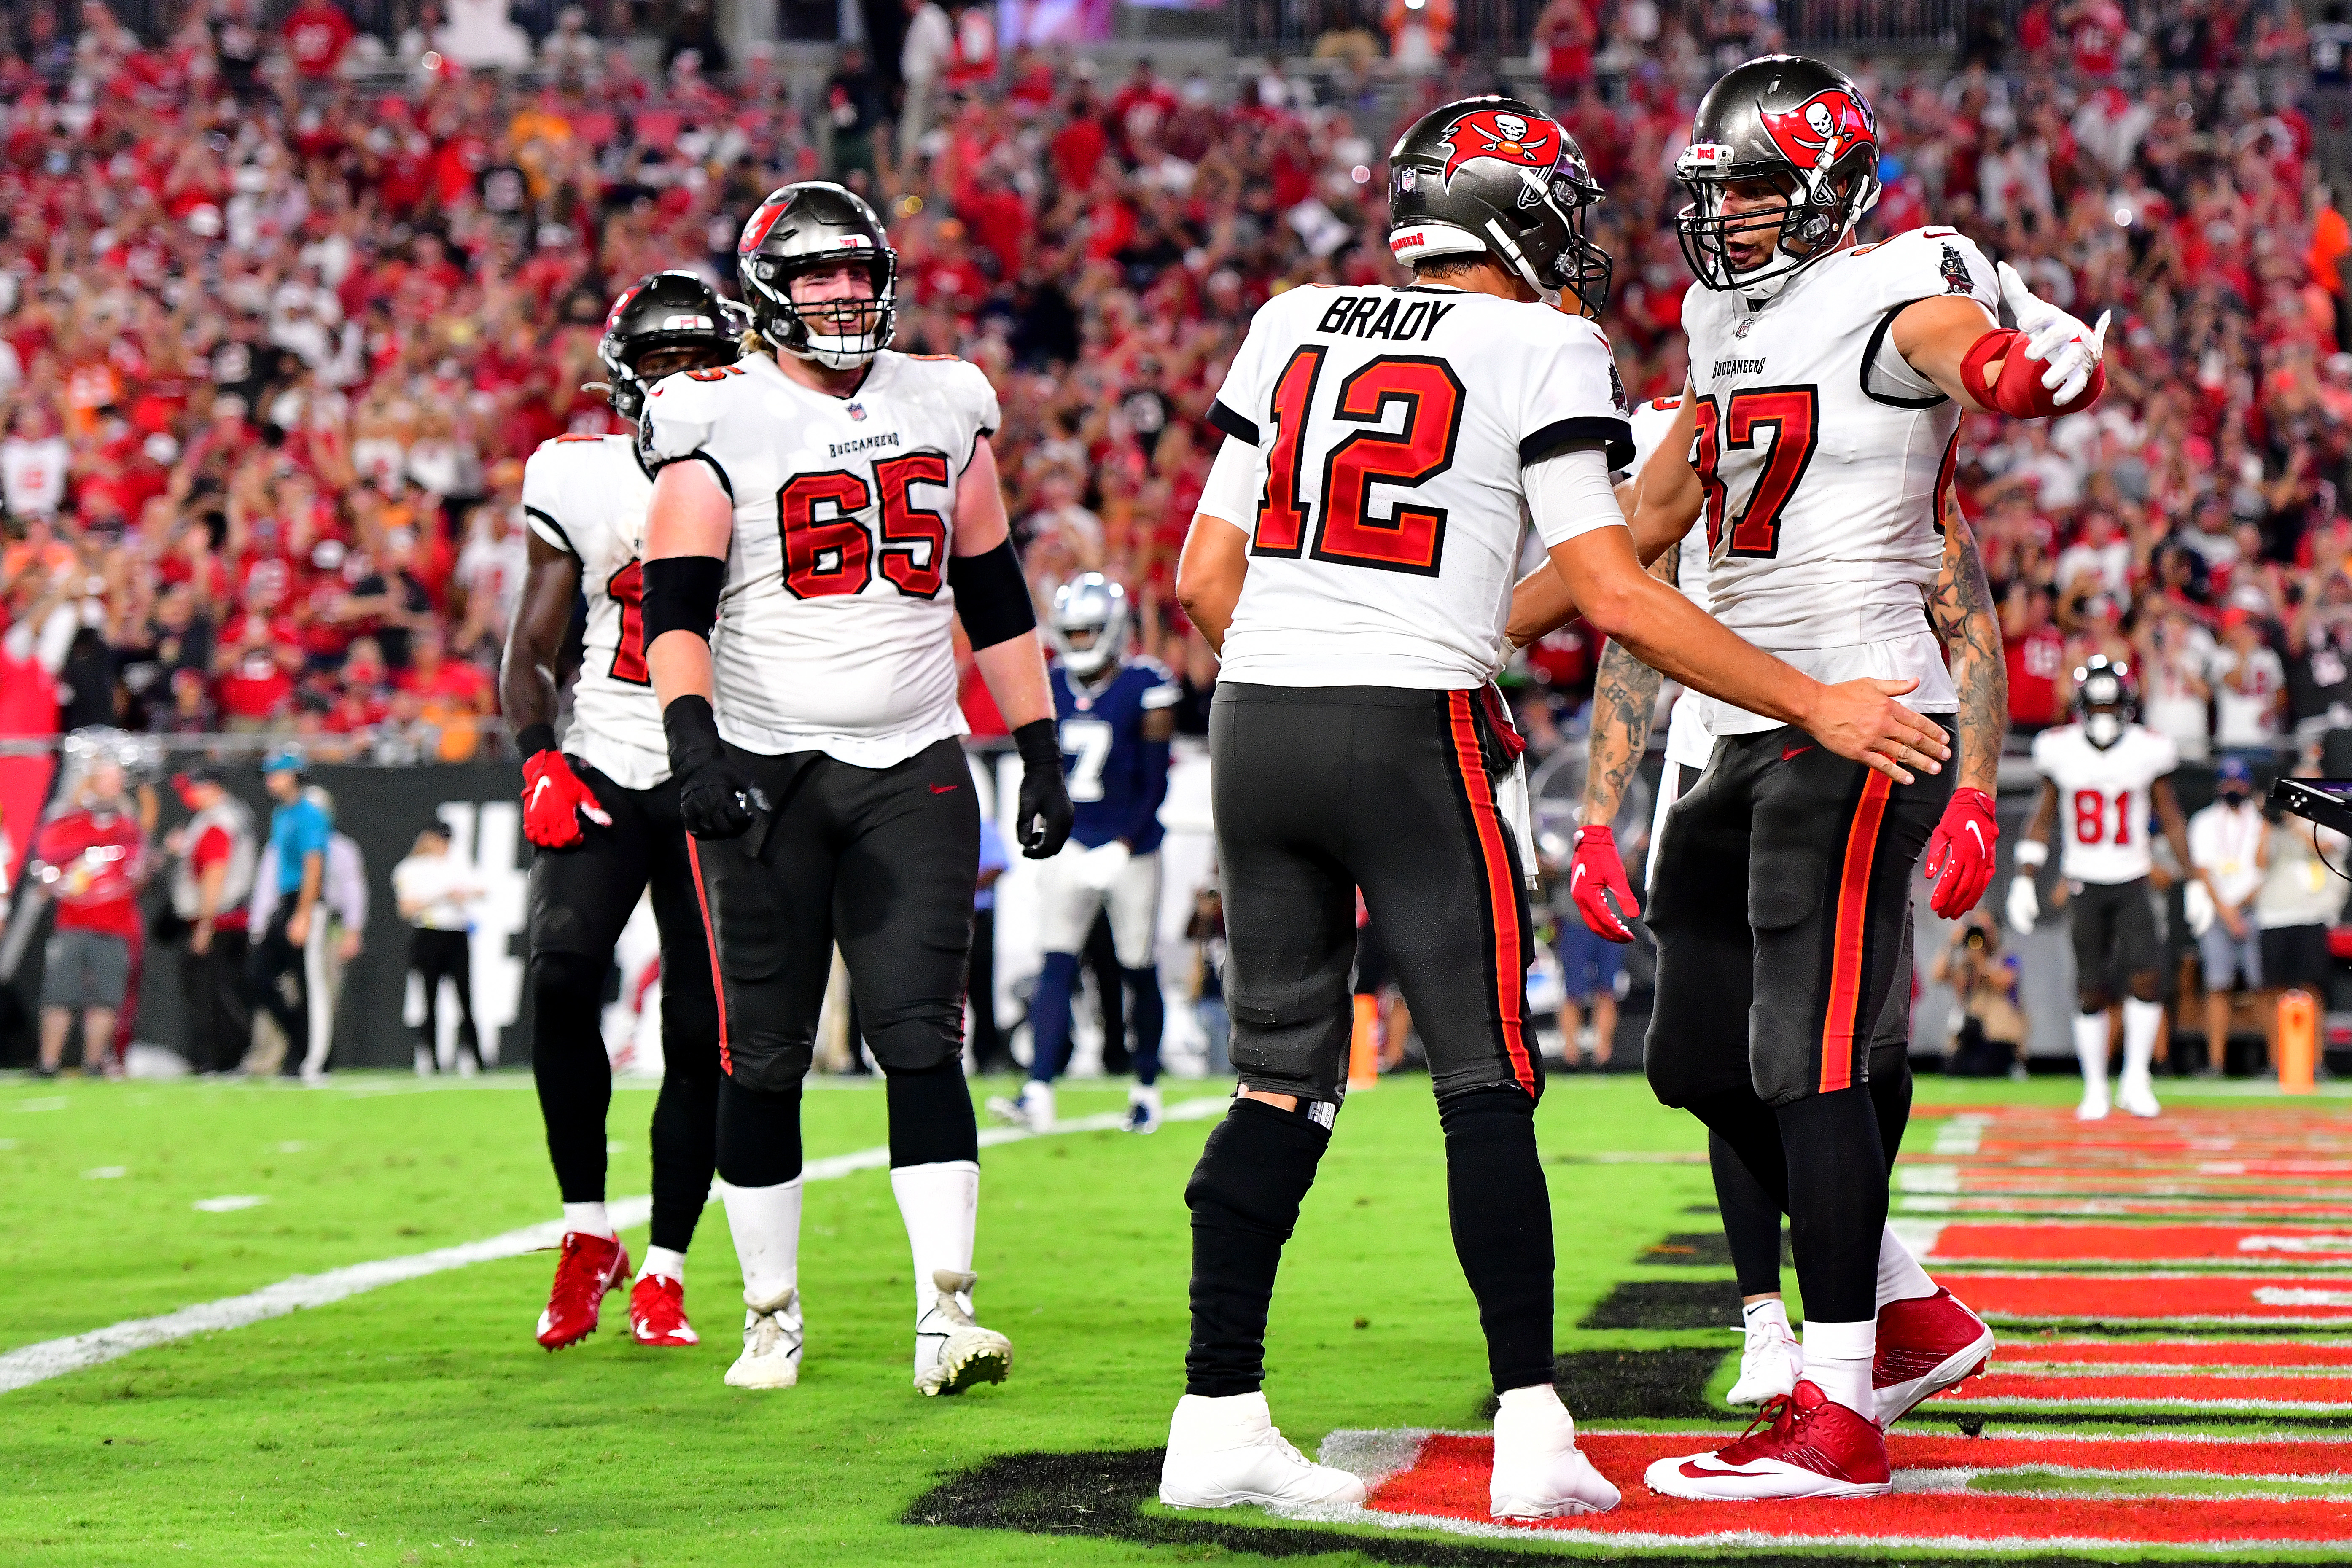 Tom Brady #12 and Rob Gronkowski #87 of the Tampa Bay Buccaneers celebrate a touchdown during the second quarter against the Dallas Cowboys at Raymond James Stadium on September 09, 2021 in Tampa, Florida.